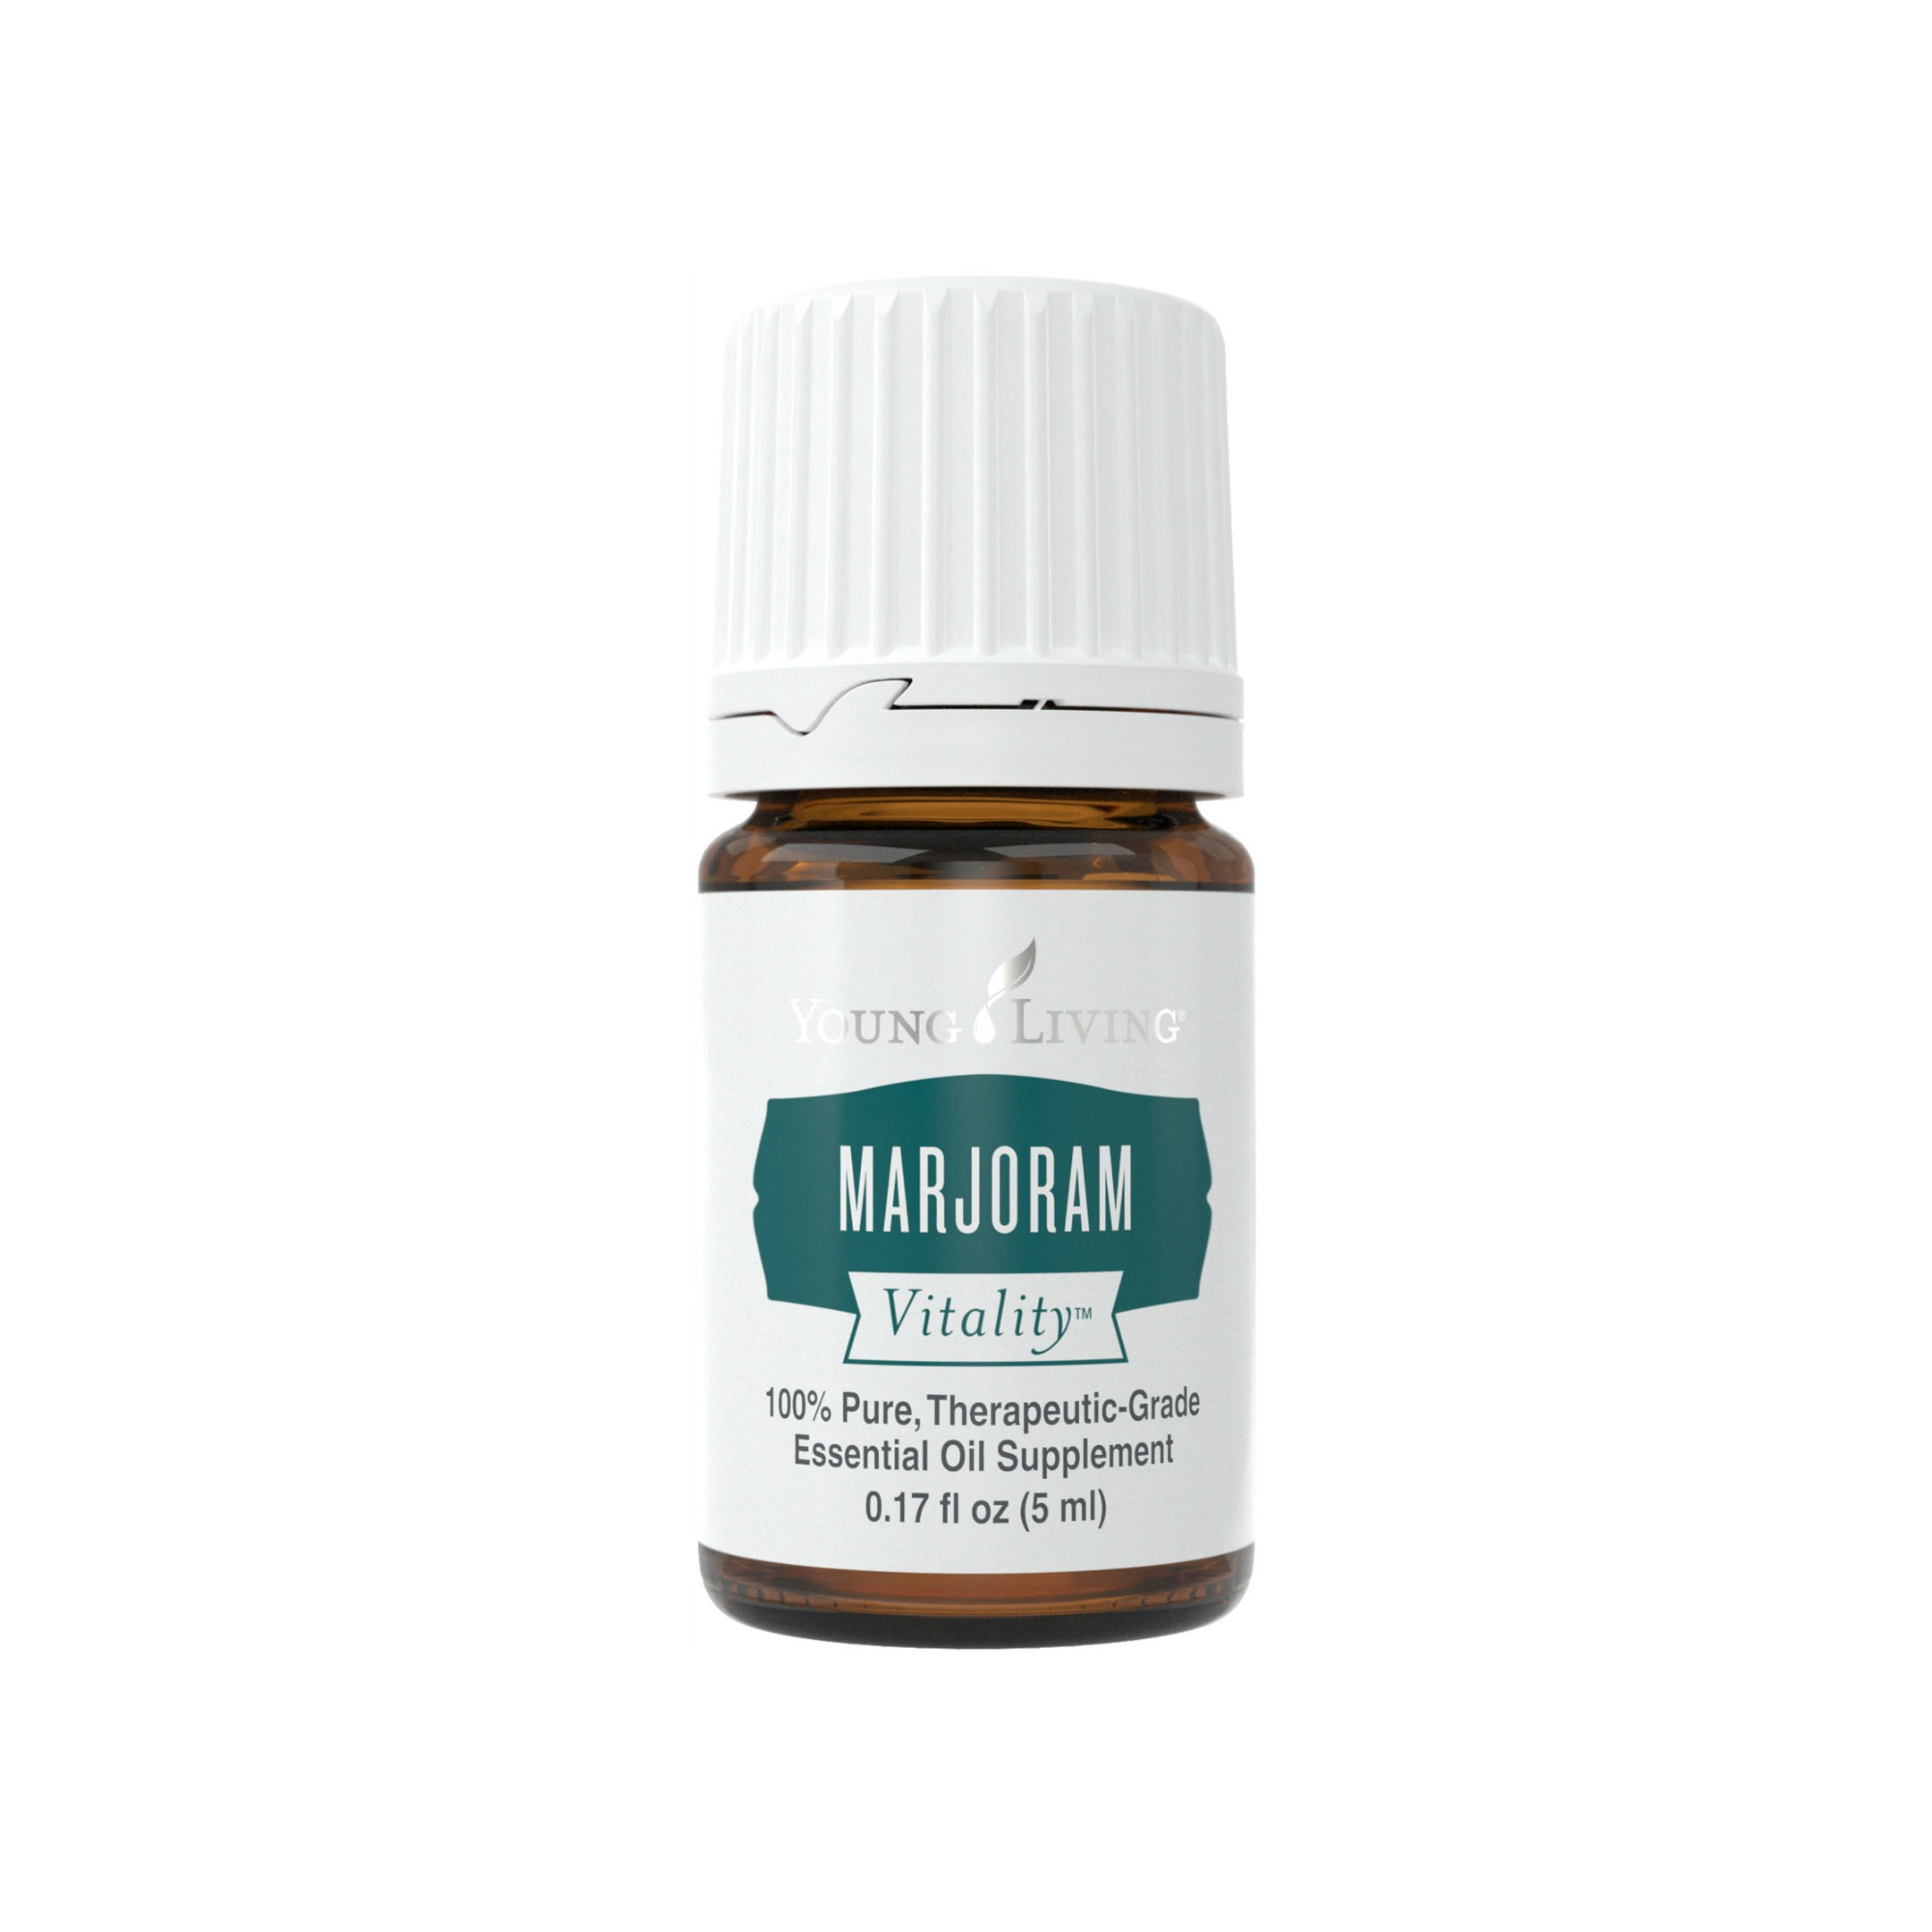 MARJORAM VITALITY    Marjoram is found in many savory dishes, especially those from Mediterranean countries like Italy. Steam distilled from the leaves of the plant, Marjoram Vitality essential oil has a similar flavor to Oregano Vitality and is the perfect complement to fish, chicken, soup, and vegetables dishes.   Click here   to learn more about this product.